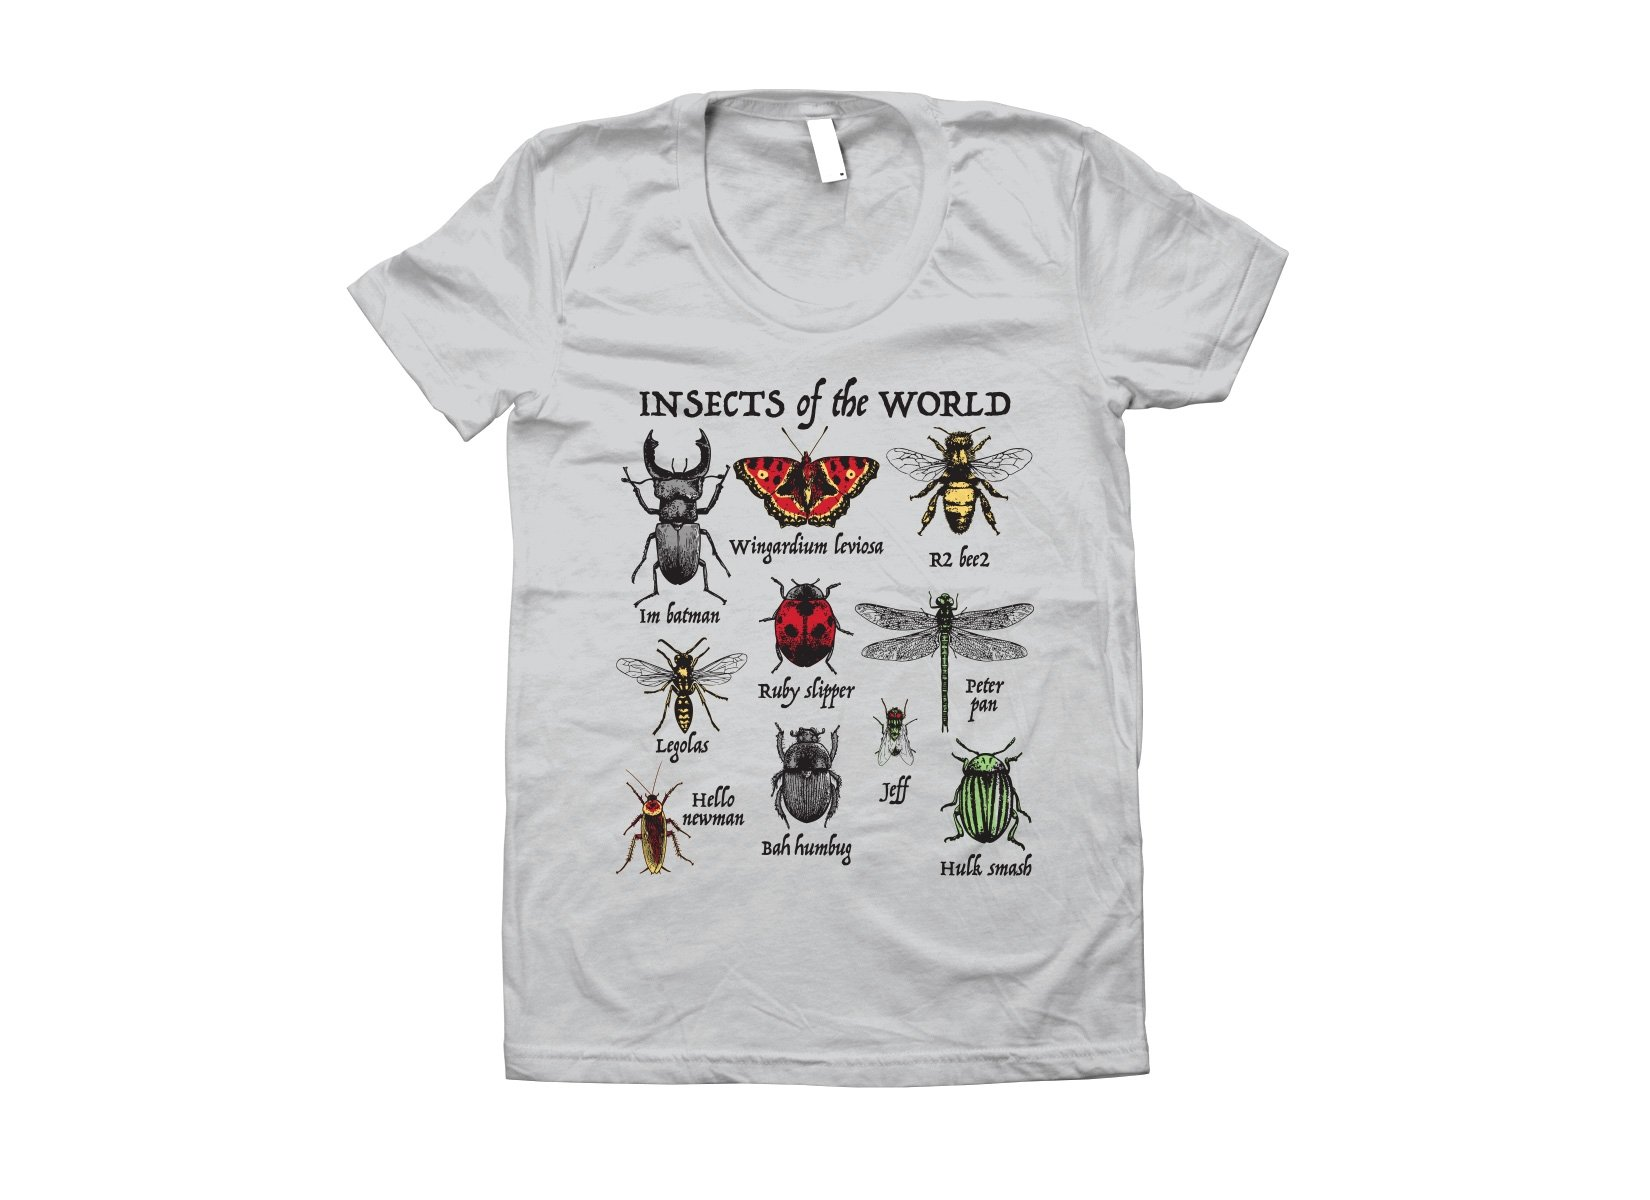 Insects Of The World on Juniors T-Shirt